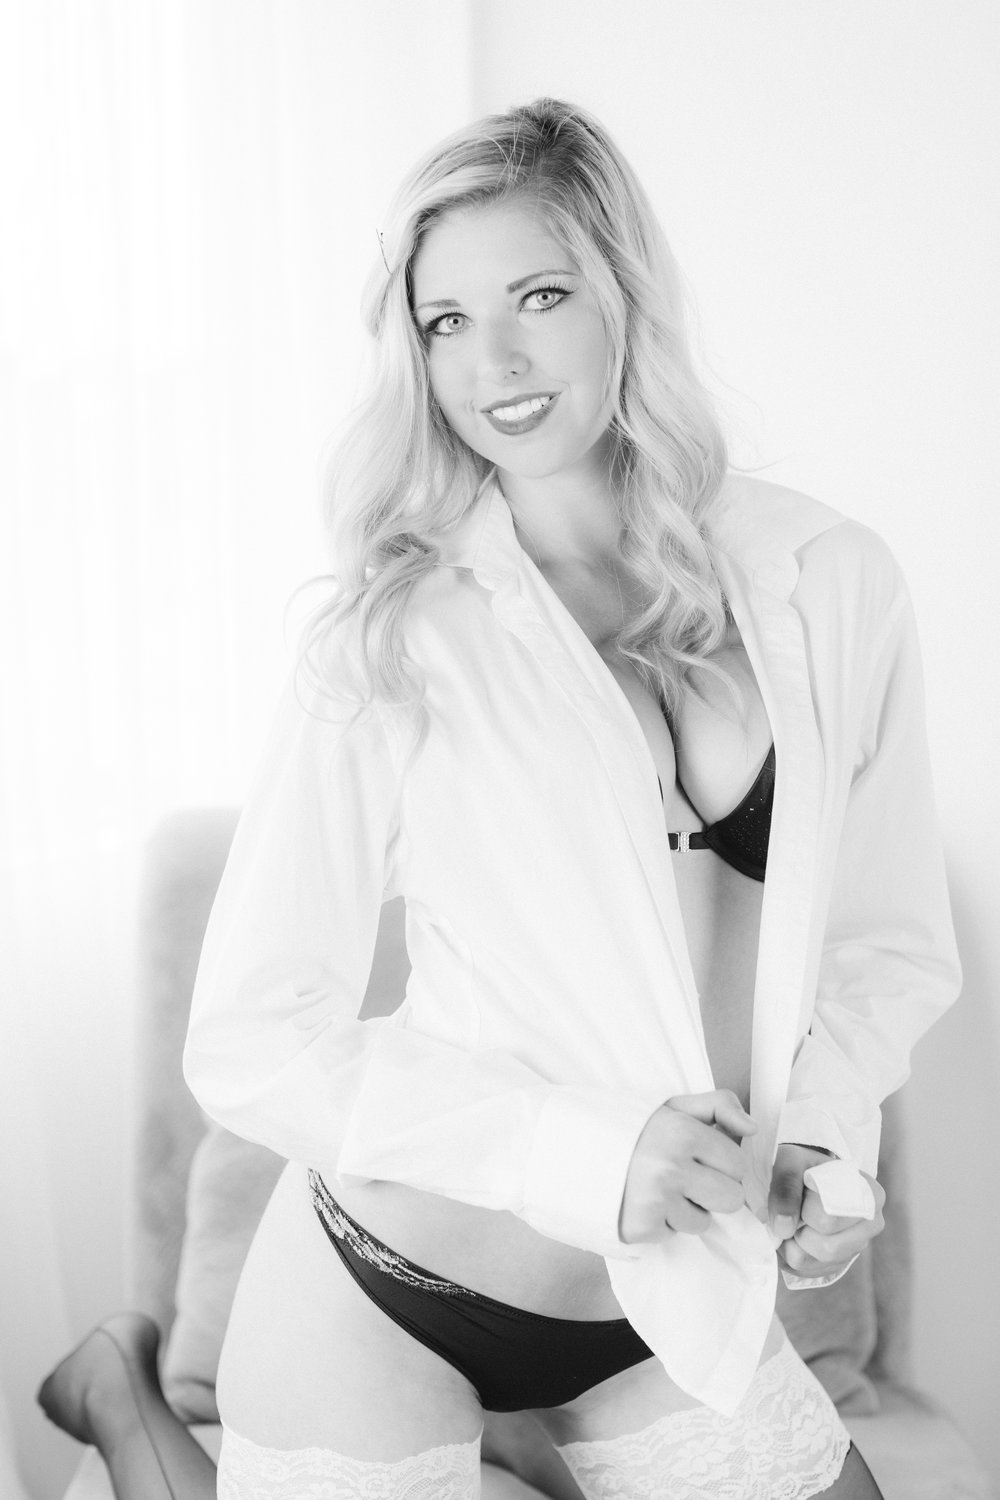 Experienced Edmonton Photographer - specializing in wedding photography, engagement photography, boudoir photography, portrait photography -frequently asked boudoir questions